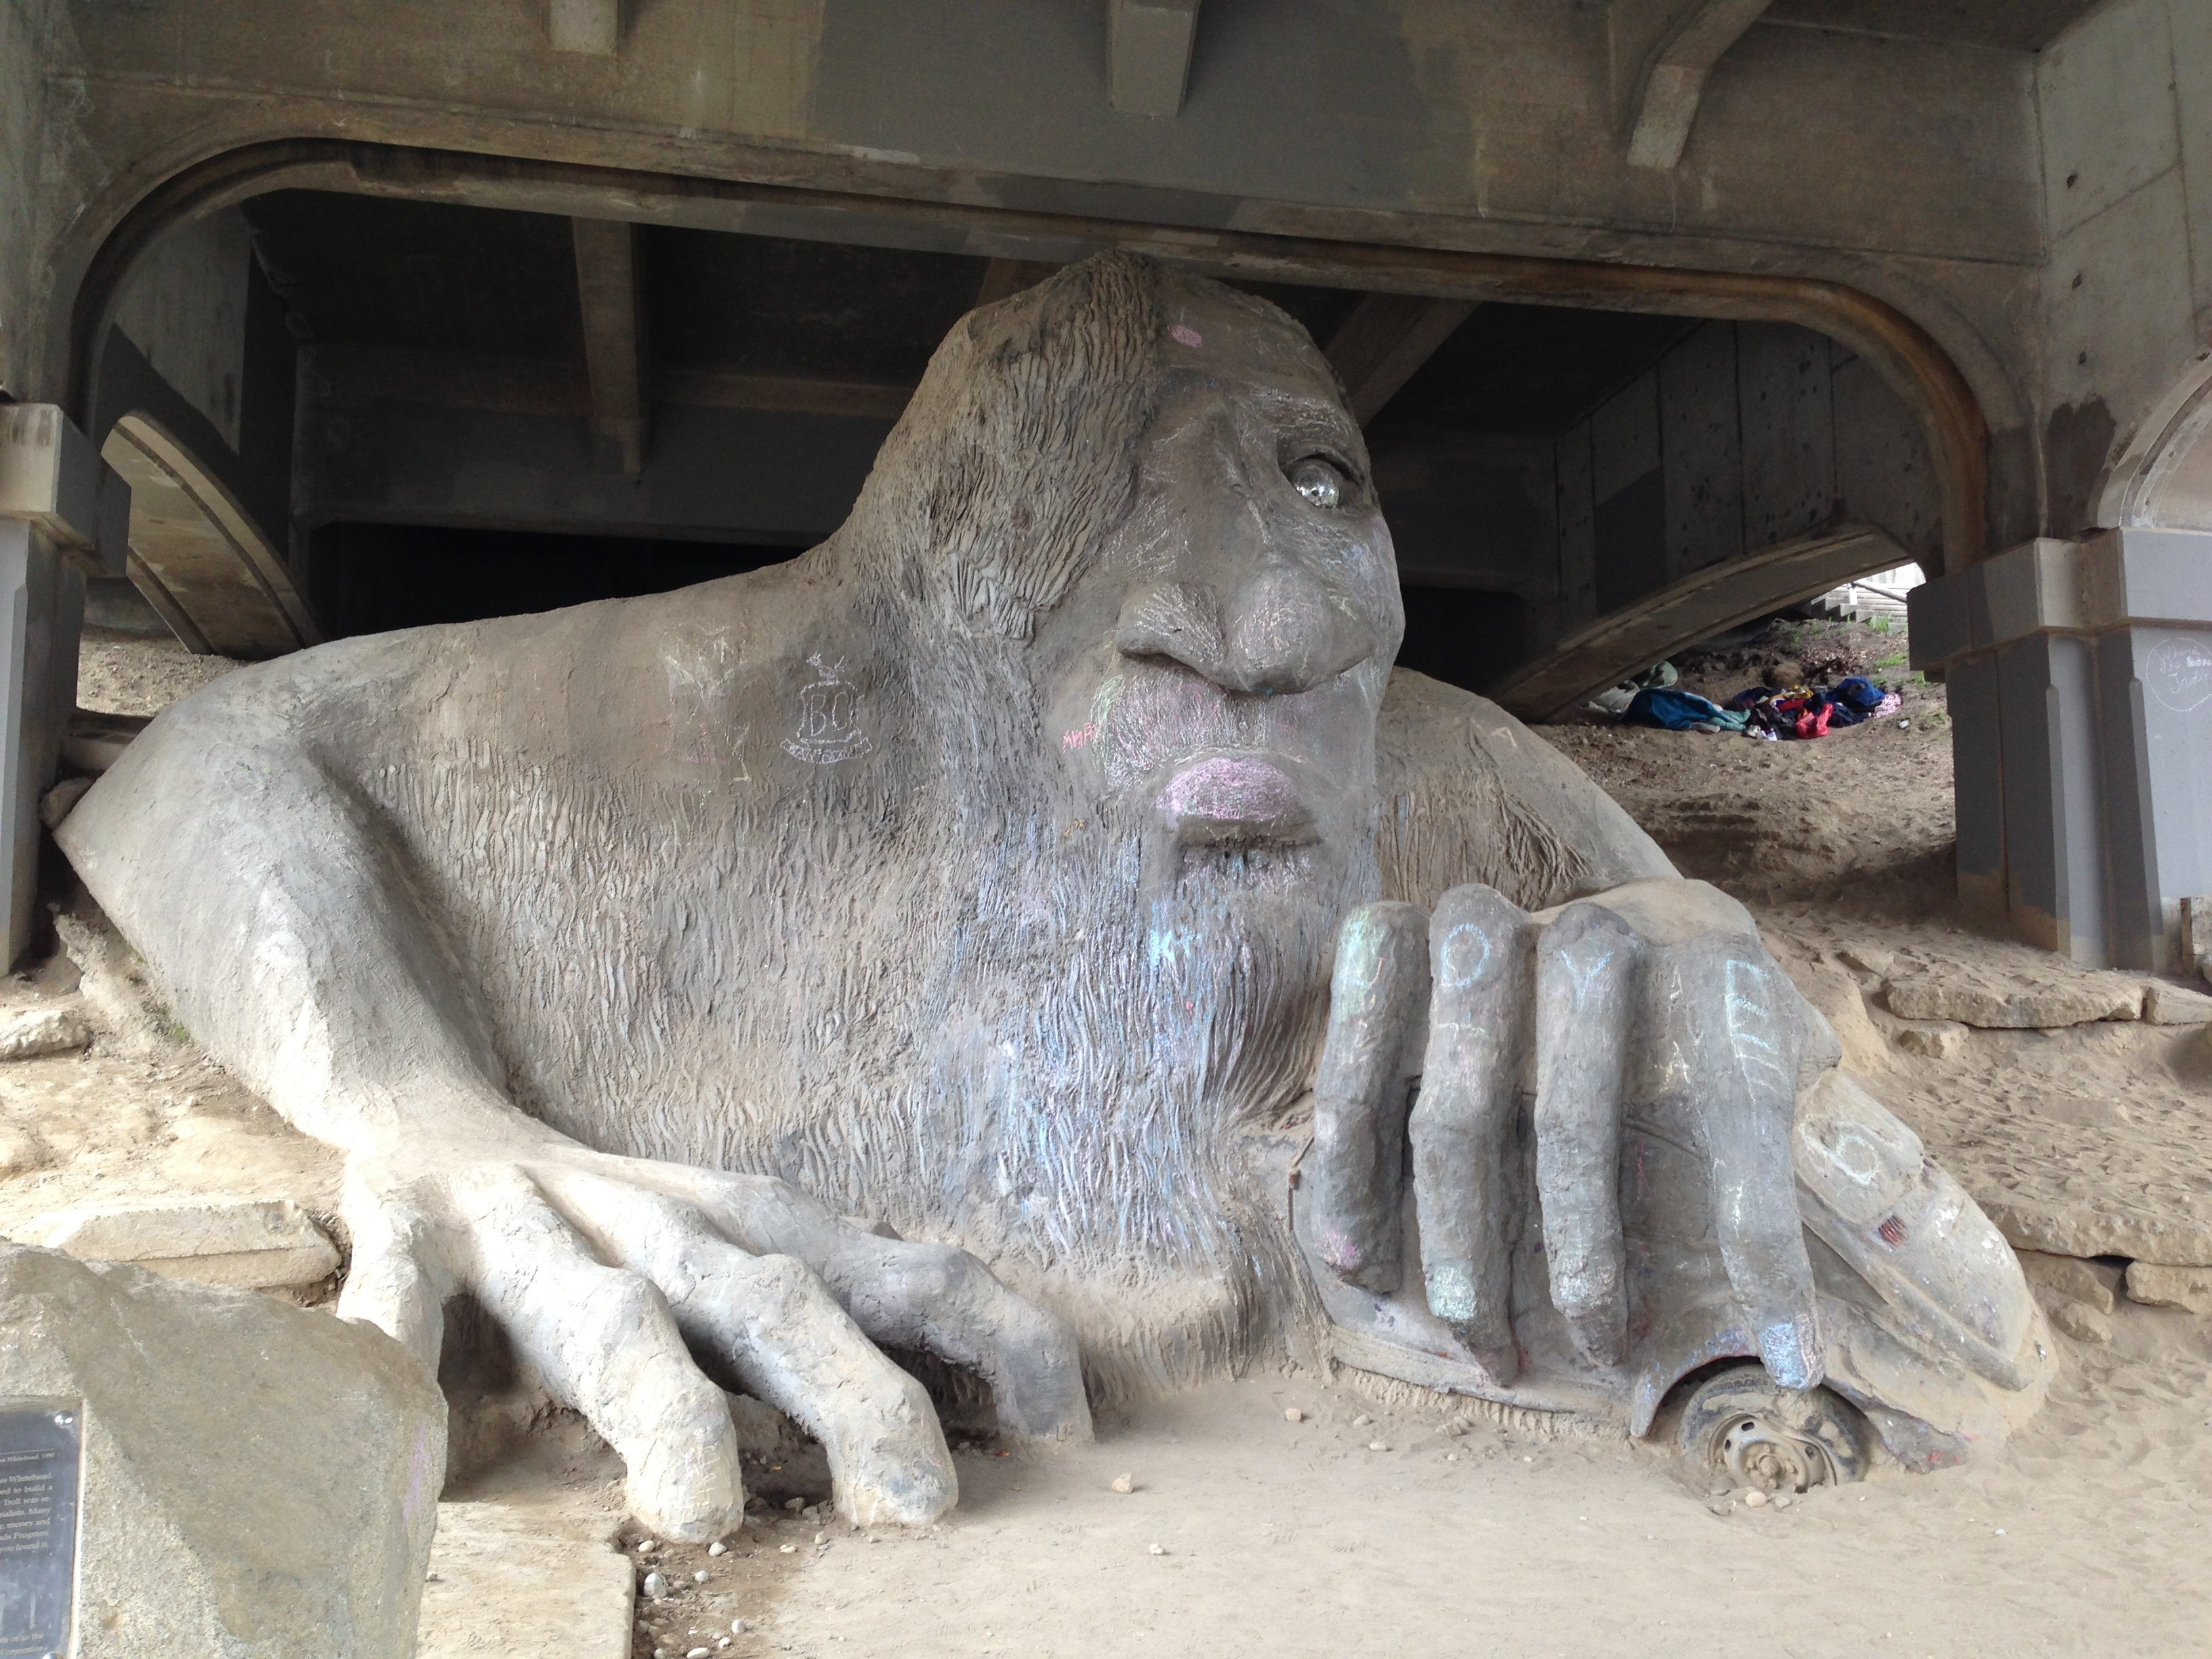 Worksheet Troll Under The Bridge Story mean old troll under the bridge hes hard as stone pics beetle in his hand